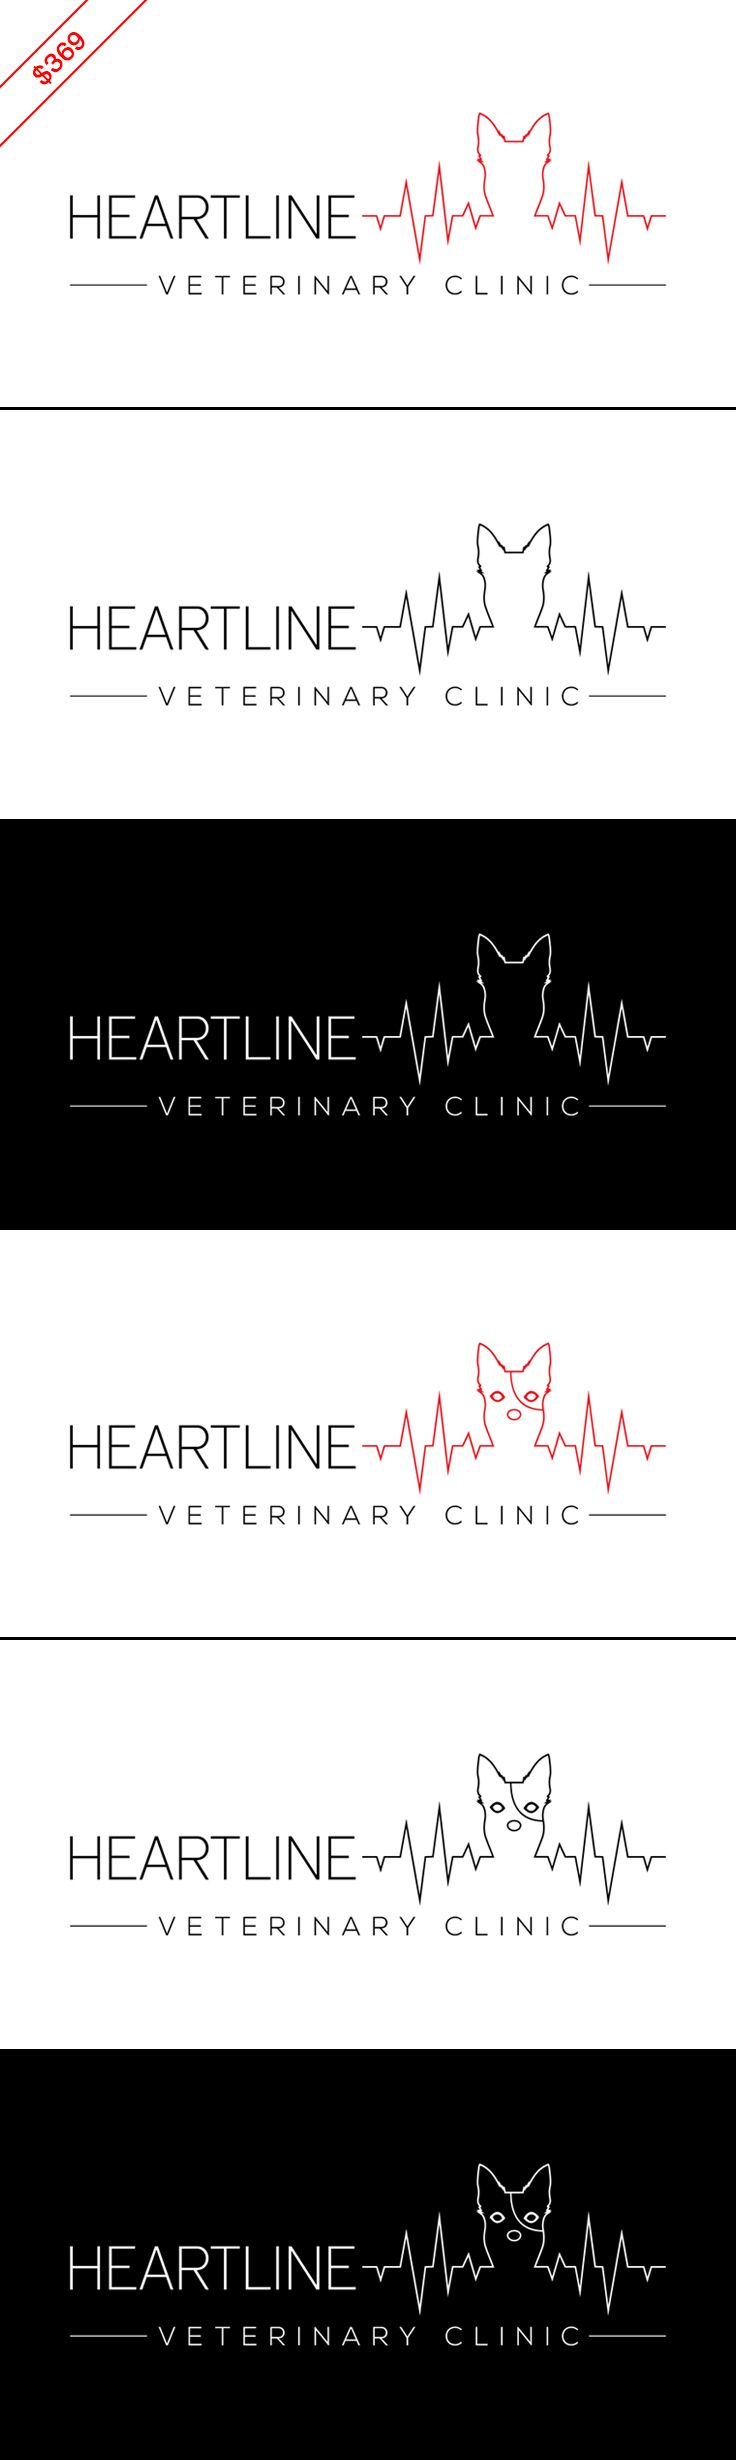 $369 Dog logo / vet logo that lets your clients know you understand how much Fluffy and Buddy mean to them, and reassures them that you'll treat their pets with the utmost care. Concept will be customized with your brand name and color preferences once you buy it. Businesses: veterinary clinic, pet ambulance, pet supplies store, pet shop, pet grooming services, pet trainer, pet spa, pet sitter, pet hotel, pet blog.